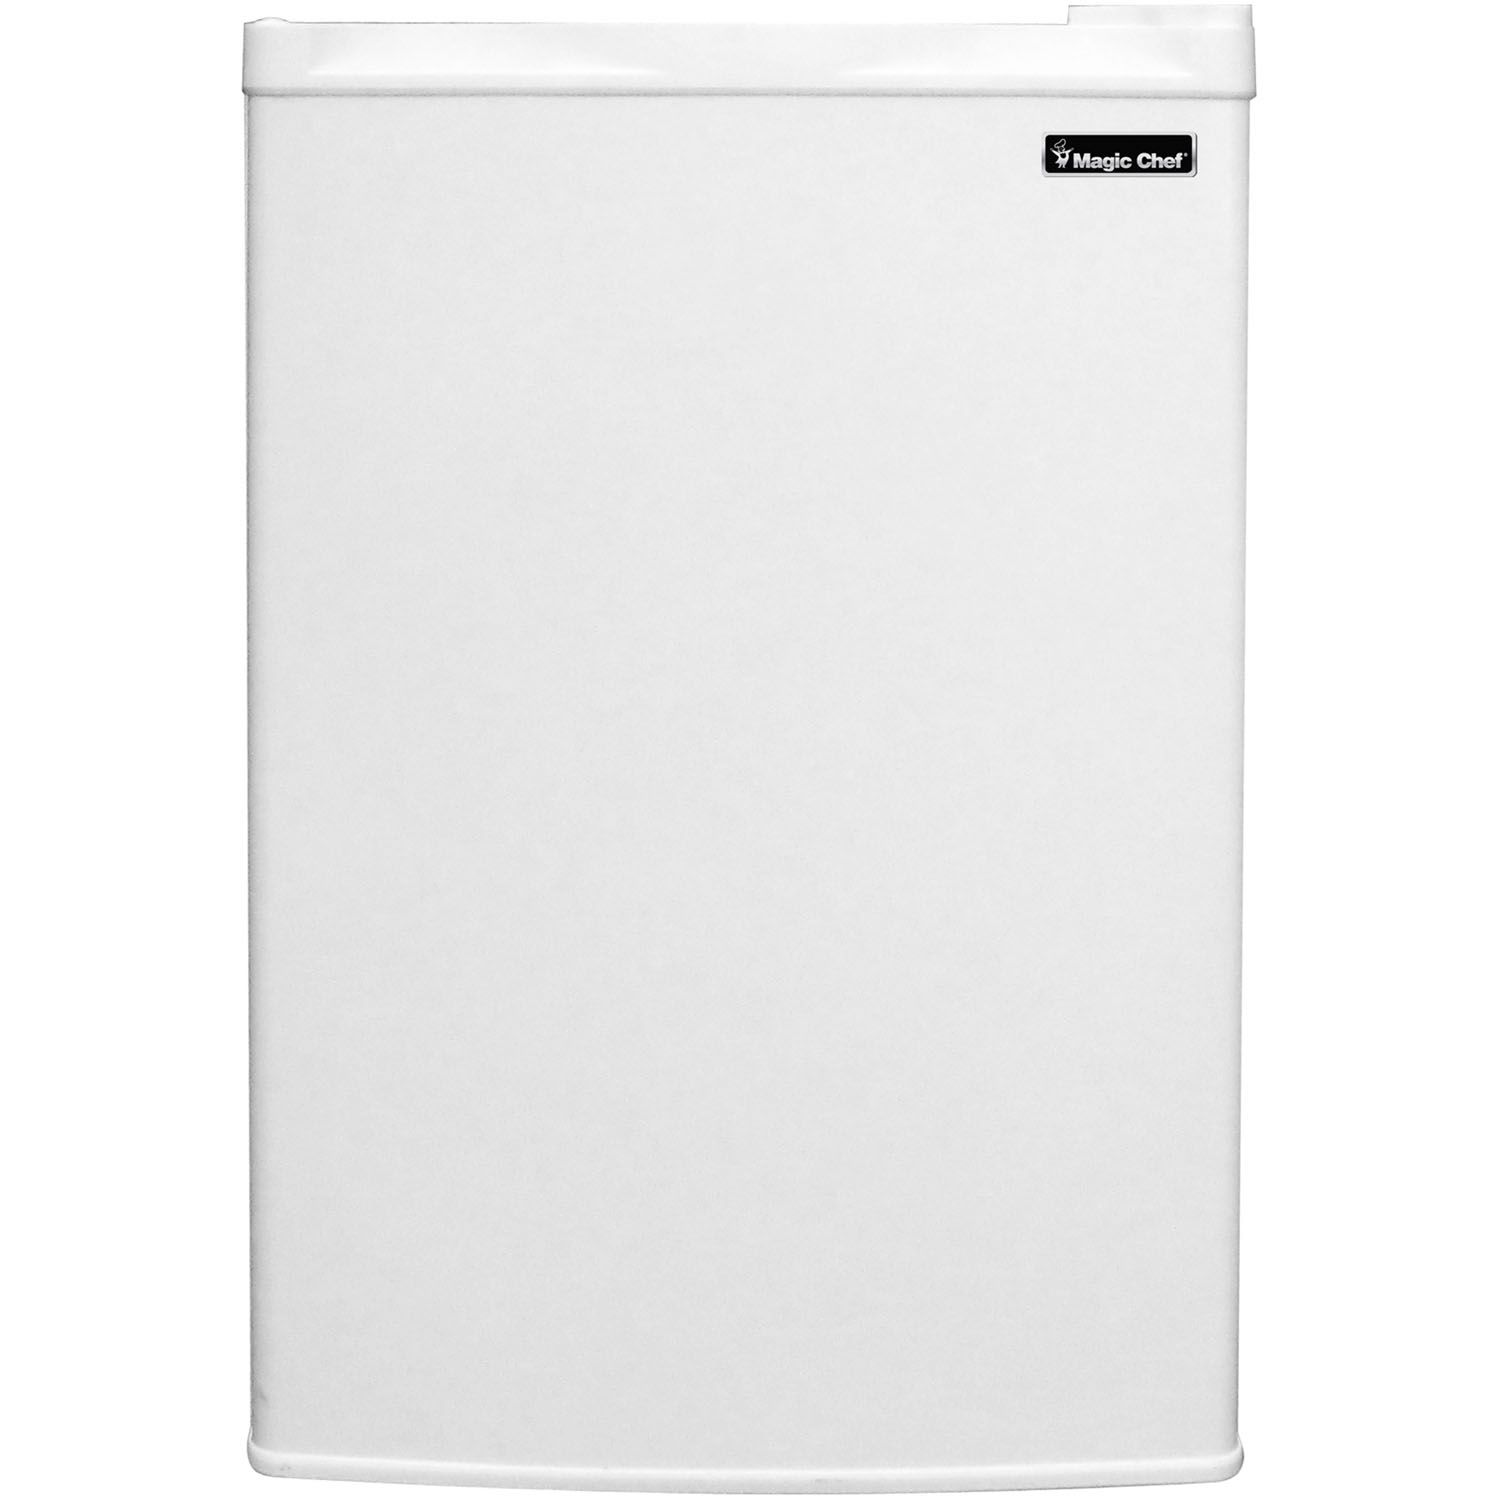 The Magic Chef MCUF3W2 3.0 cu. ft. Upright Freezer in White is a great compact option.